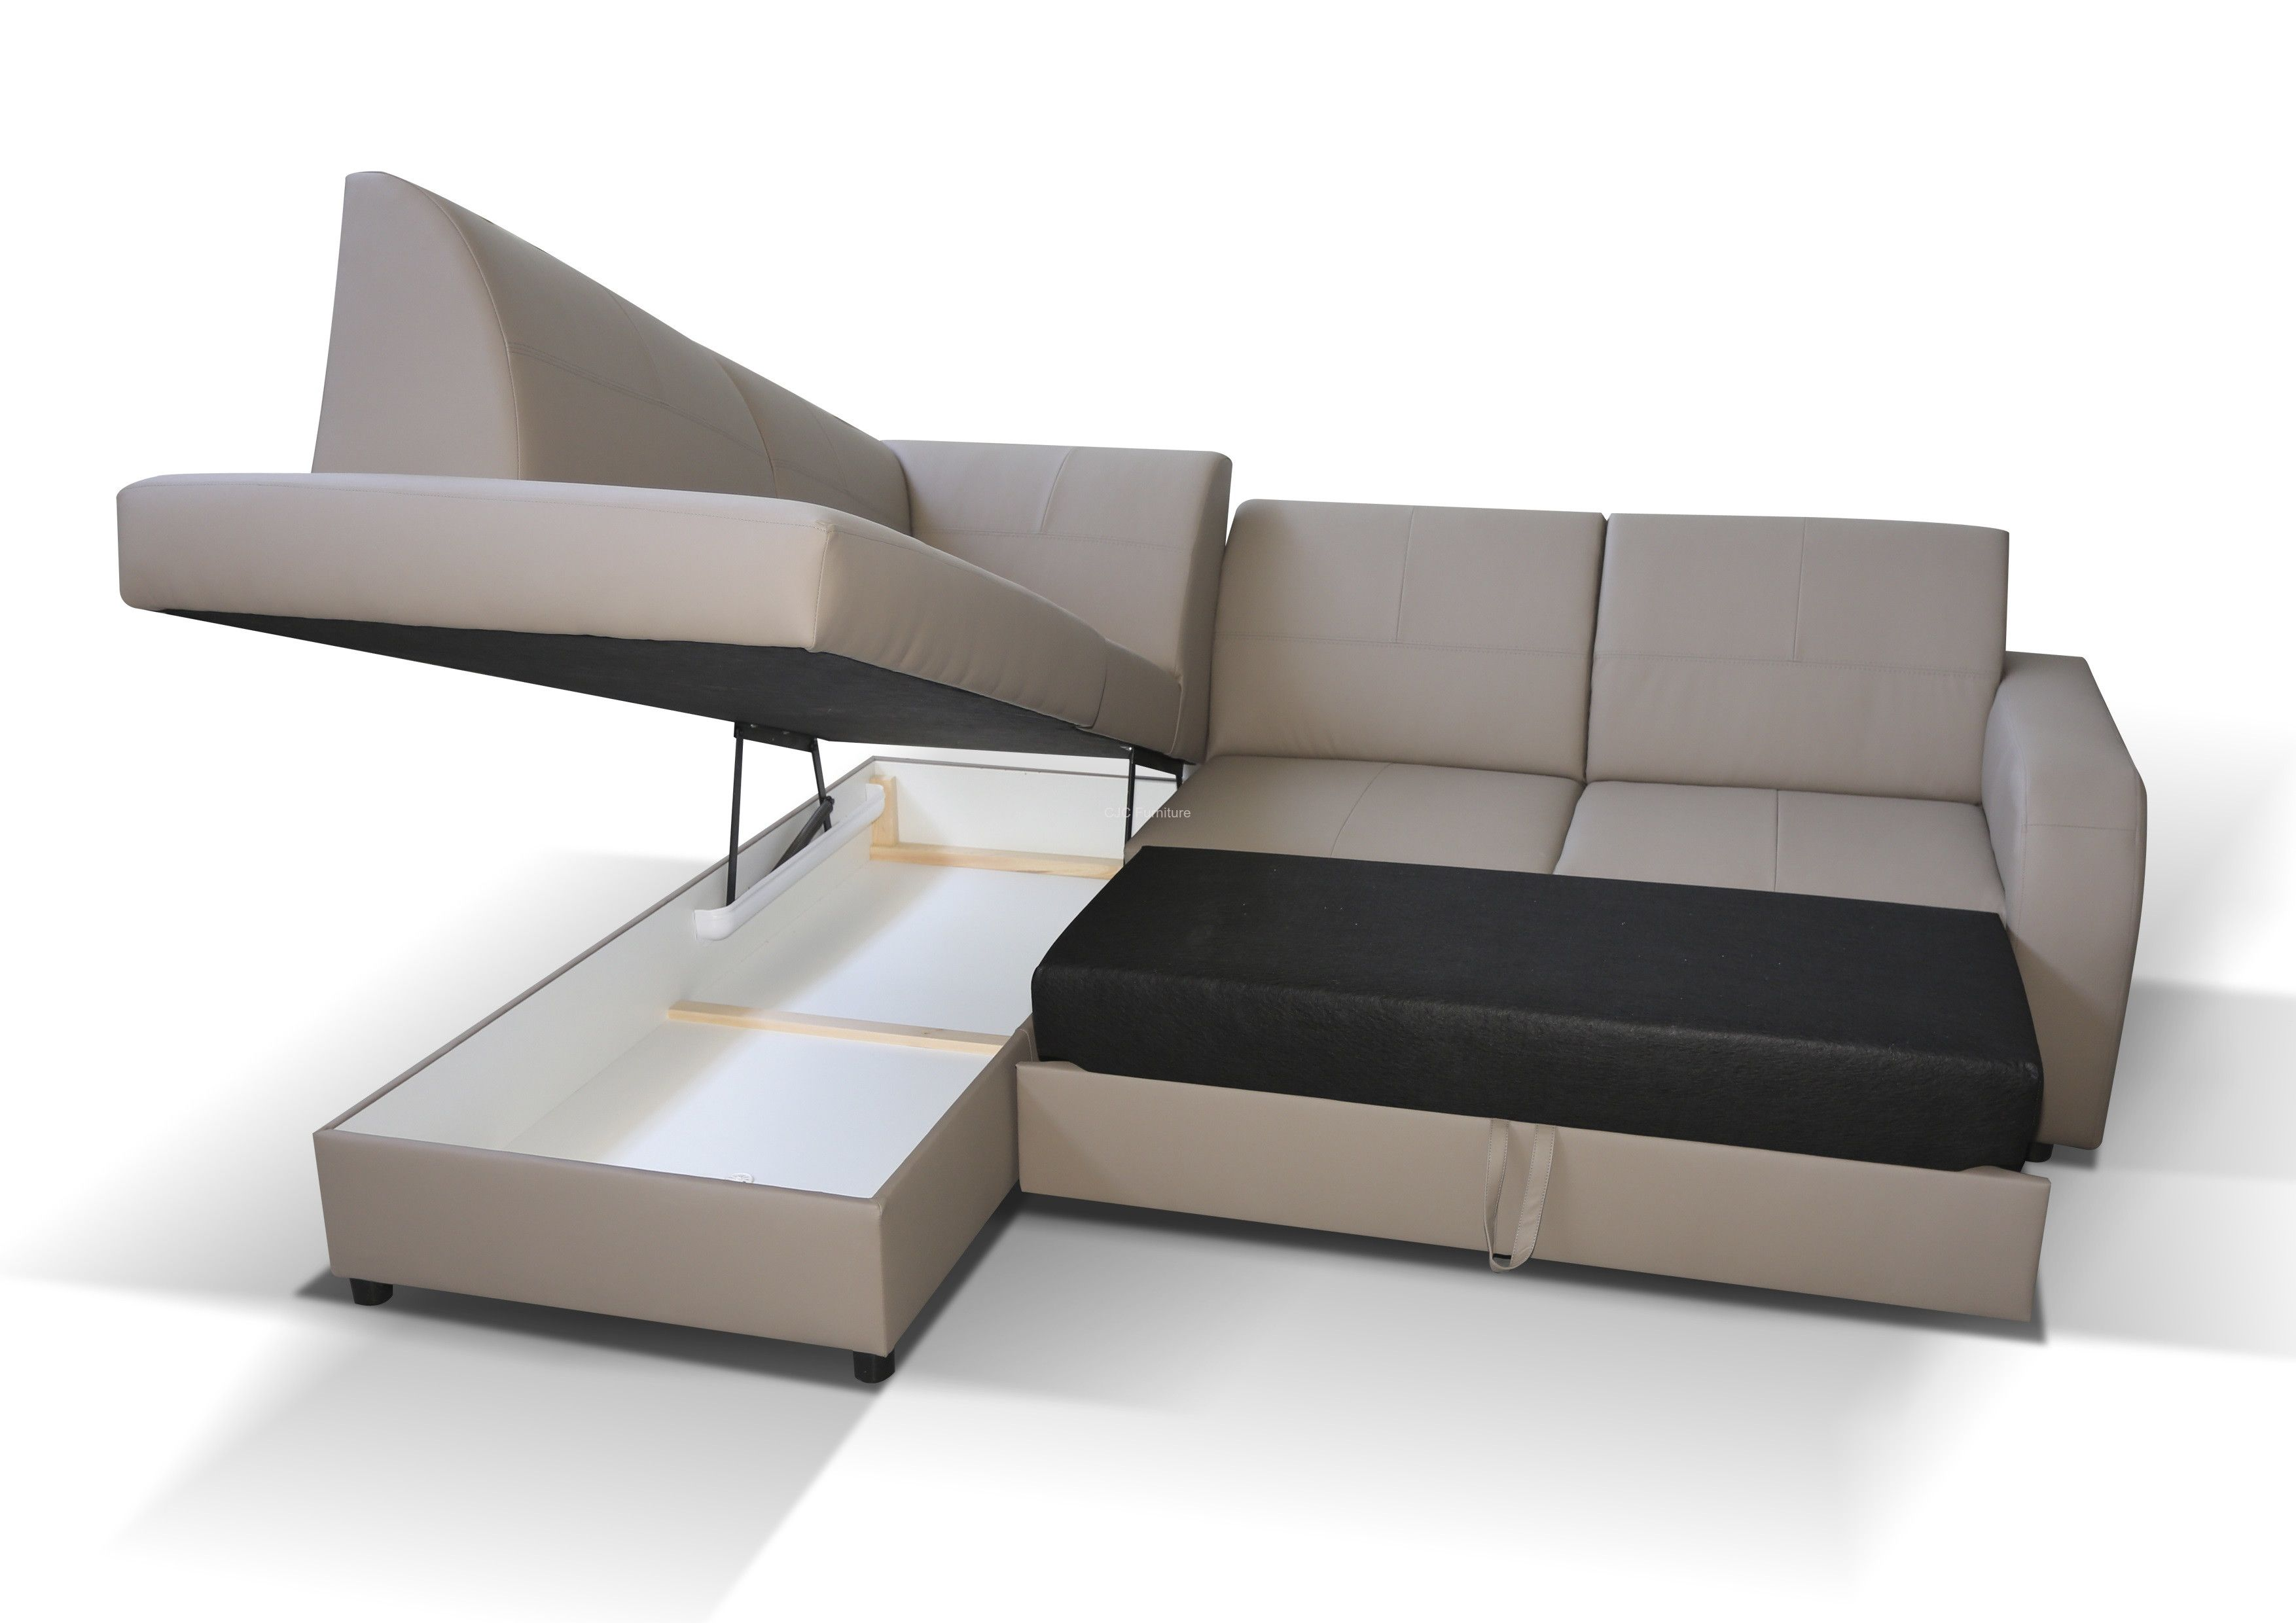 Awe Inspiring Corner Sofa Beds With Storage A Complete Package For Living Theyellowbook Wood Chair Design Ideas Theyellowbookinfo